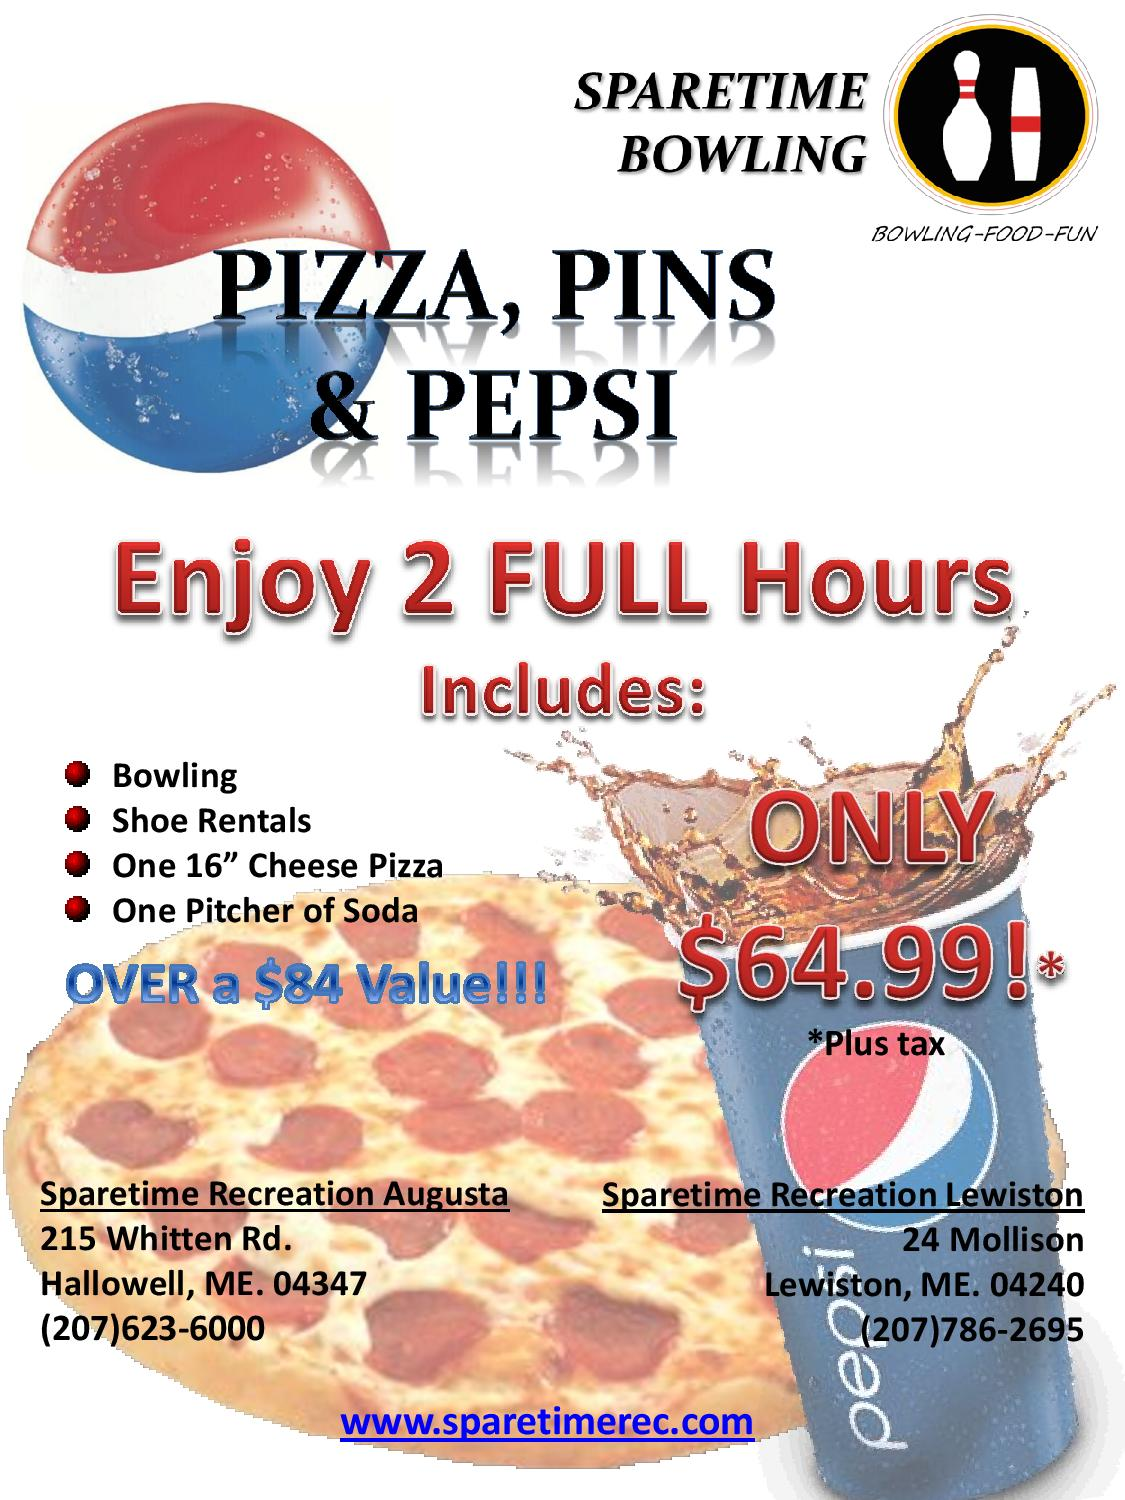 PizzaPinsPepsiLewiston